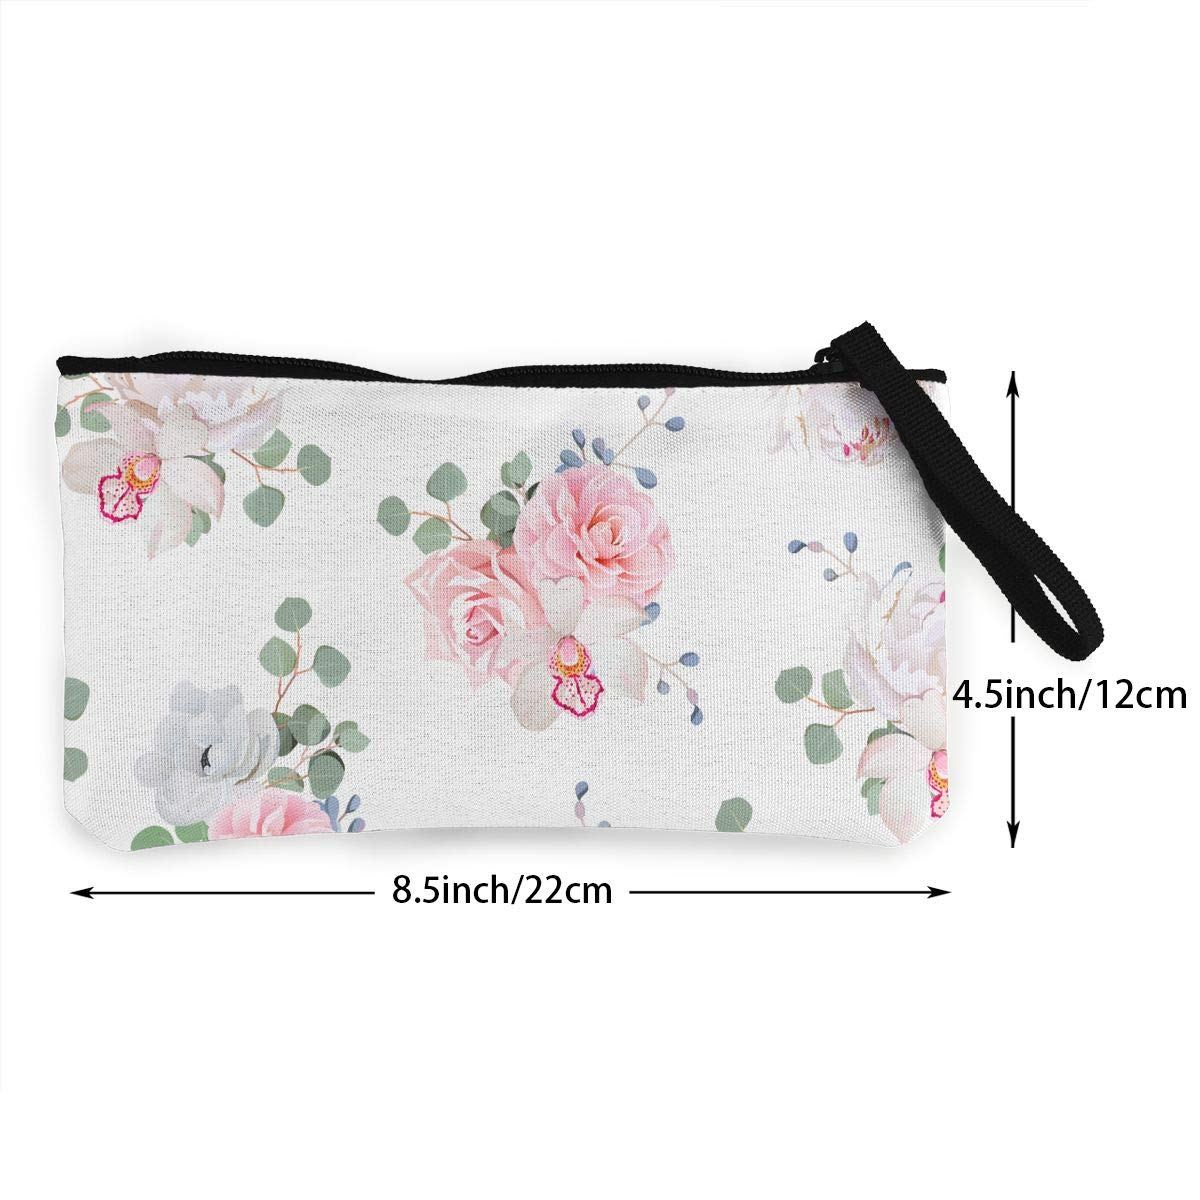 Yamini Pink and White Thorny Roses Cute Looking Coin Purse Small and Exquisite Going Out to Carry Purse